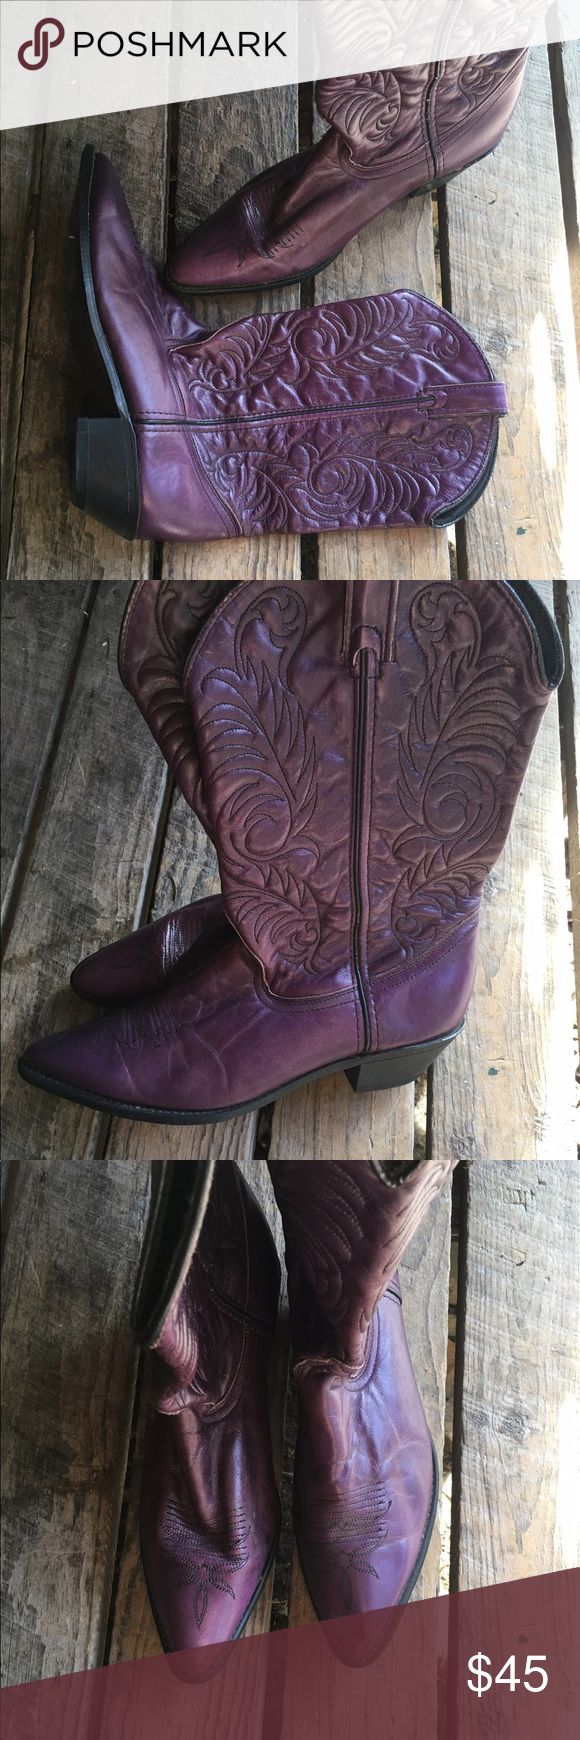 Acme Purple Cowboy Boots, Size 9 Embroidered Acme purple cowboy boots, women's size 9. Might be vintage. They're amazing. acme Shoes Heeled Boots